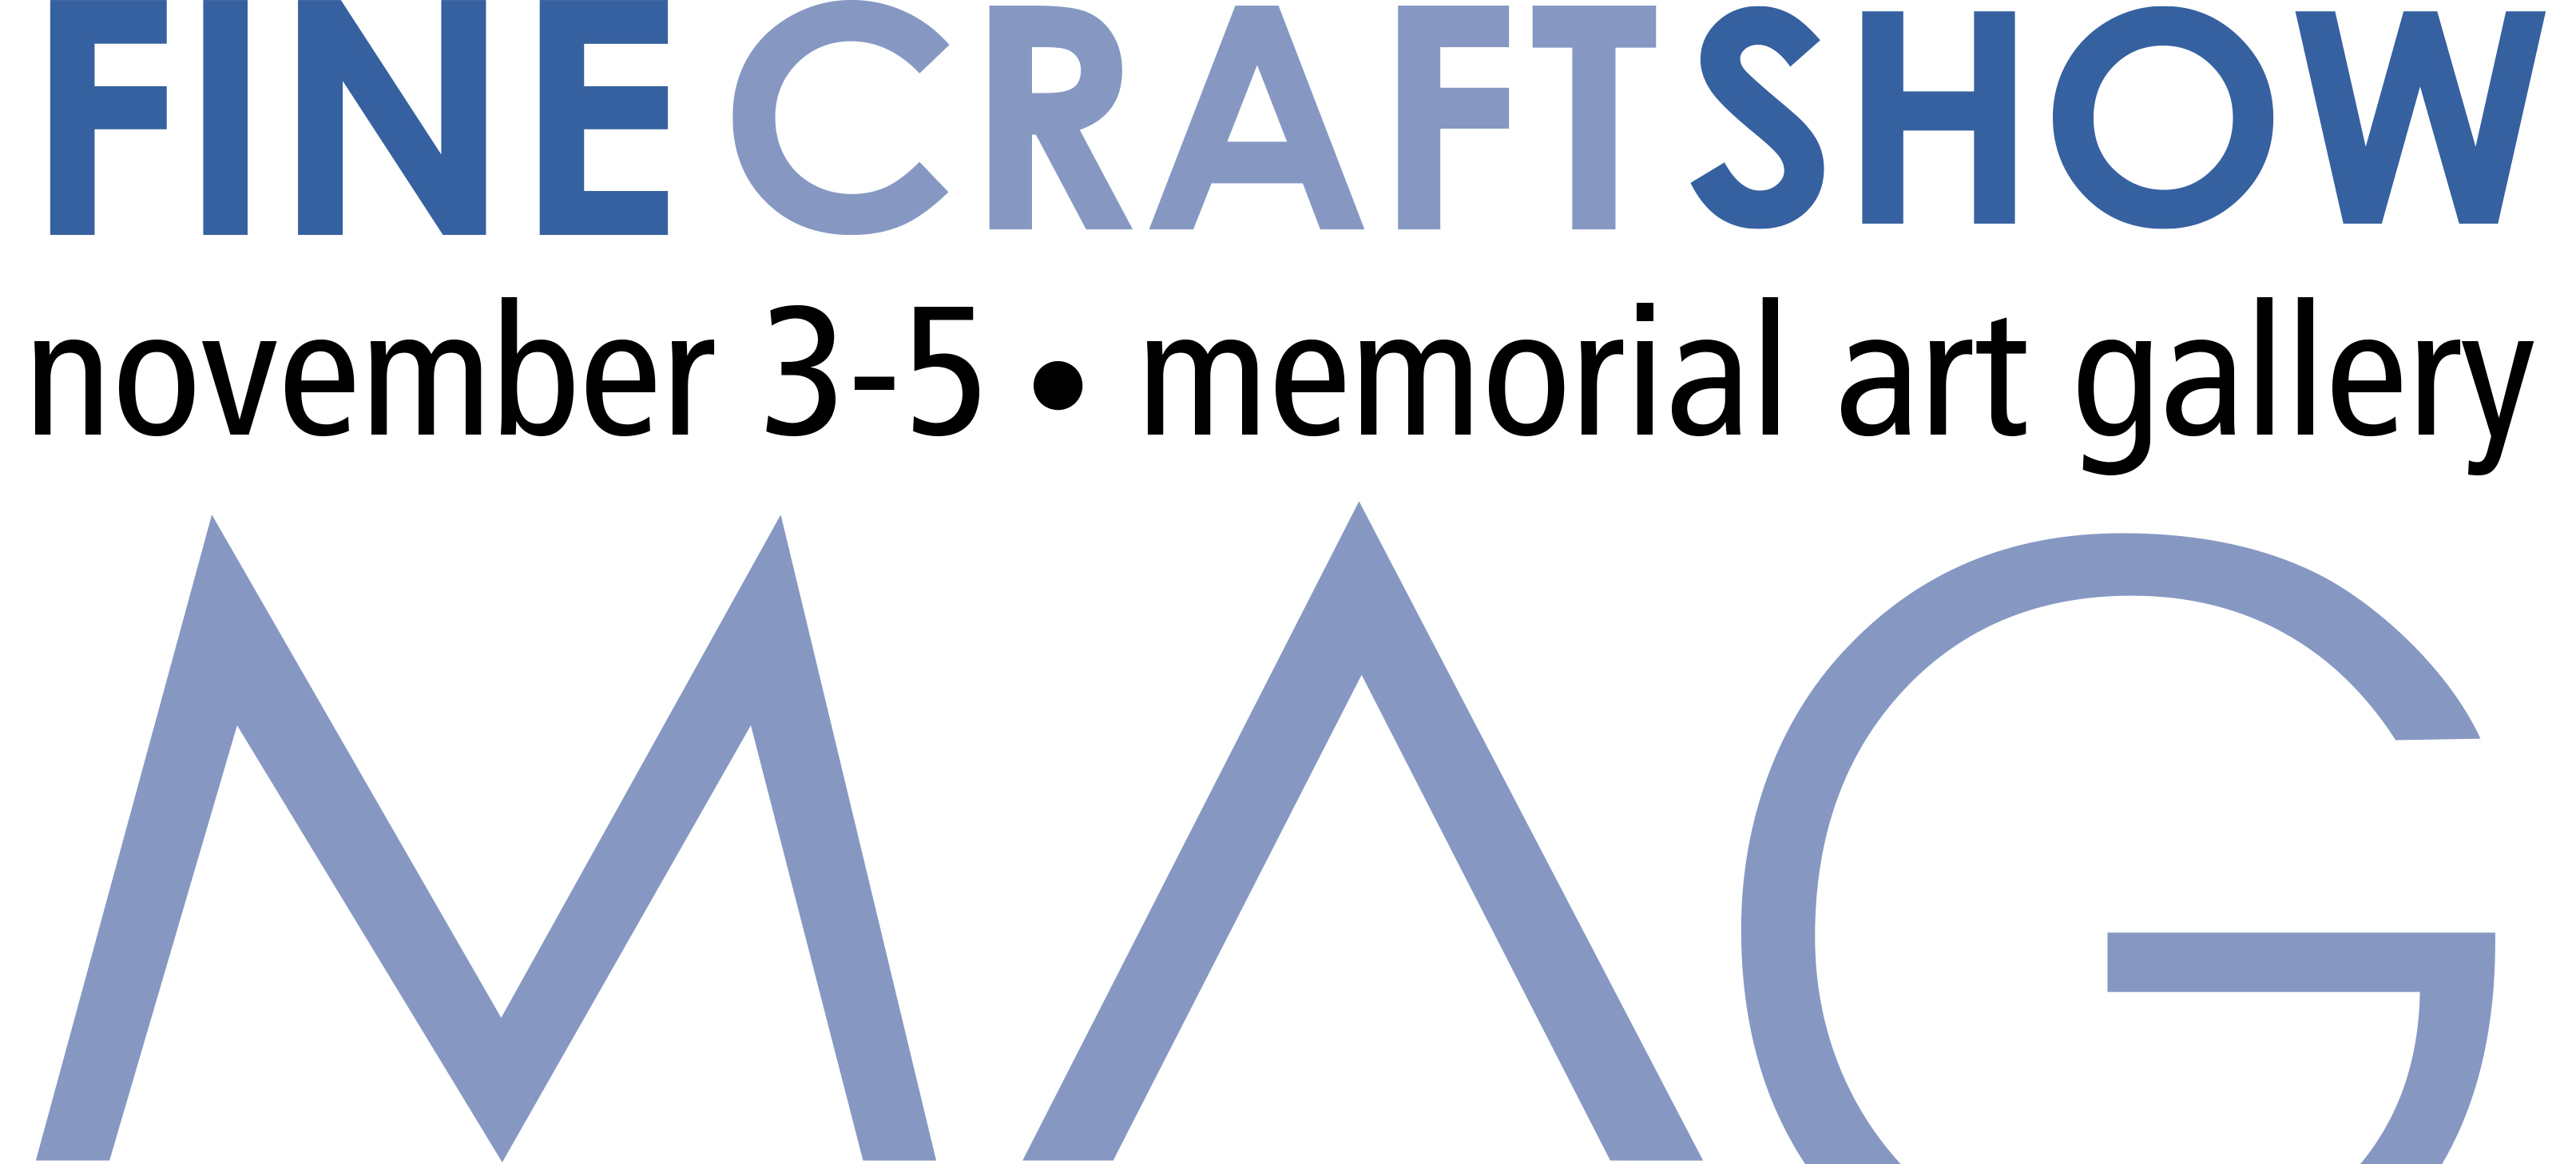 Memorial Art Gallery Fine Craft Show